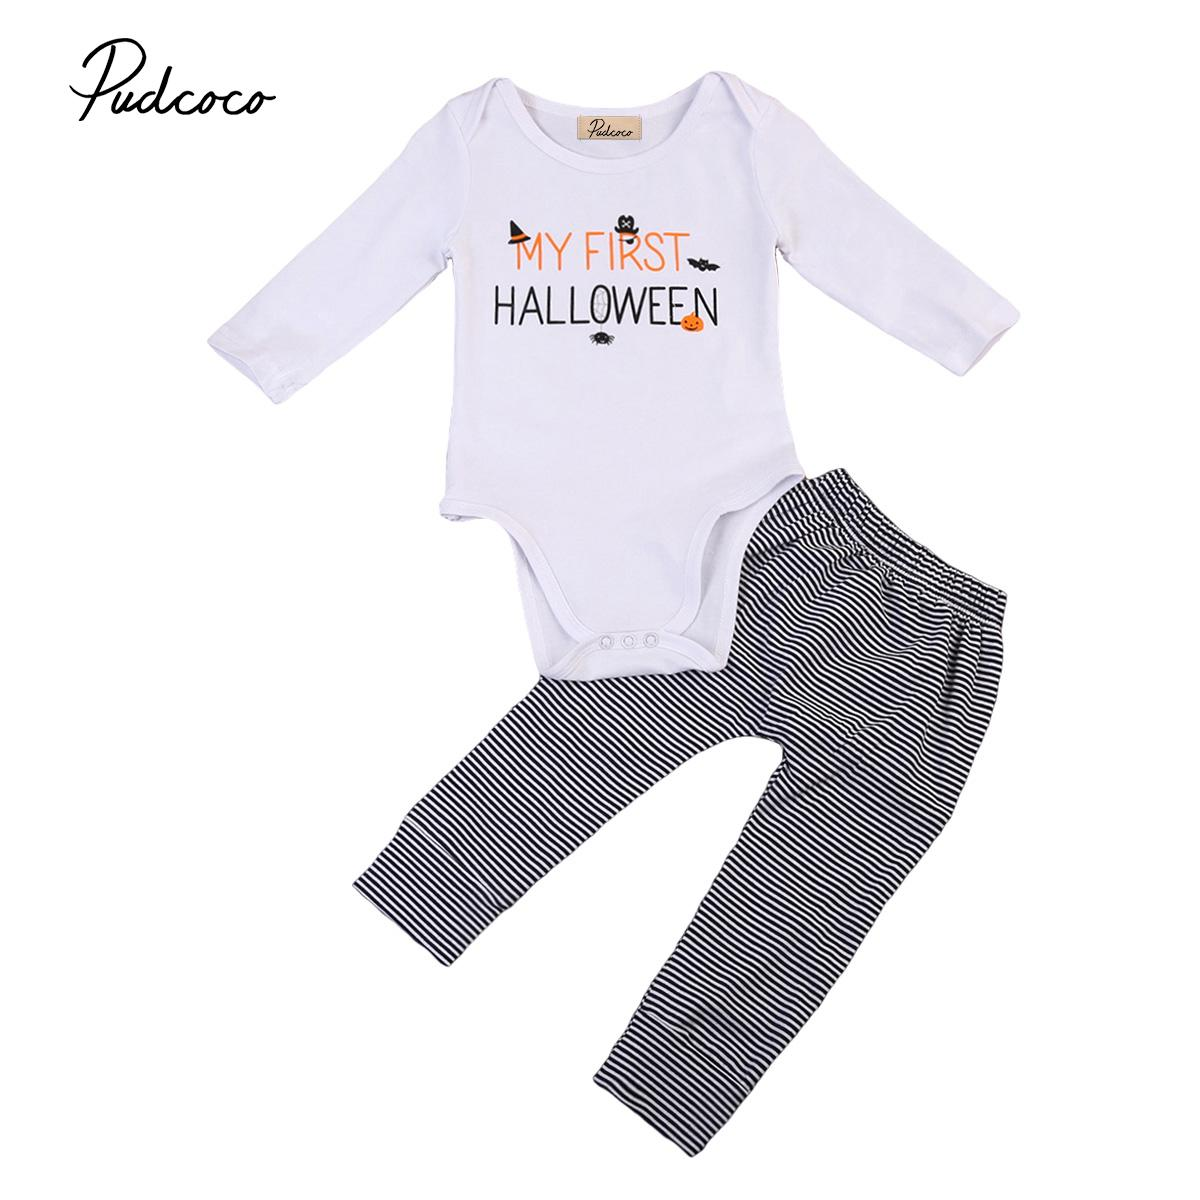 0-24M Halloween Pumpkin Baby clothing 2019 Newborn Baby Boy Girl Tops Romper+Pants 2pcs Outfits Set